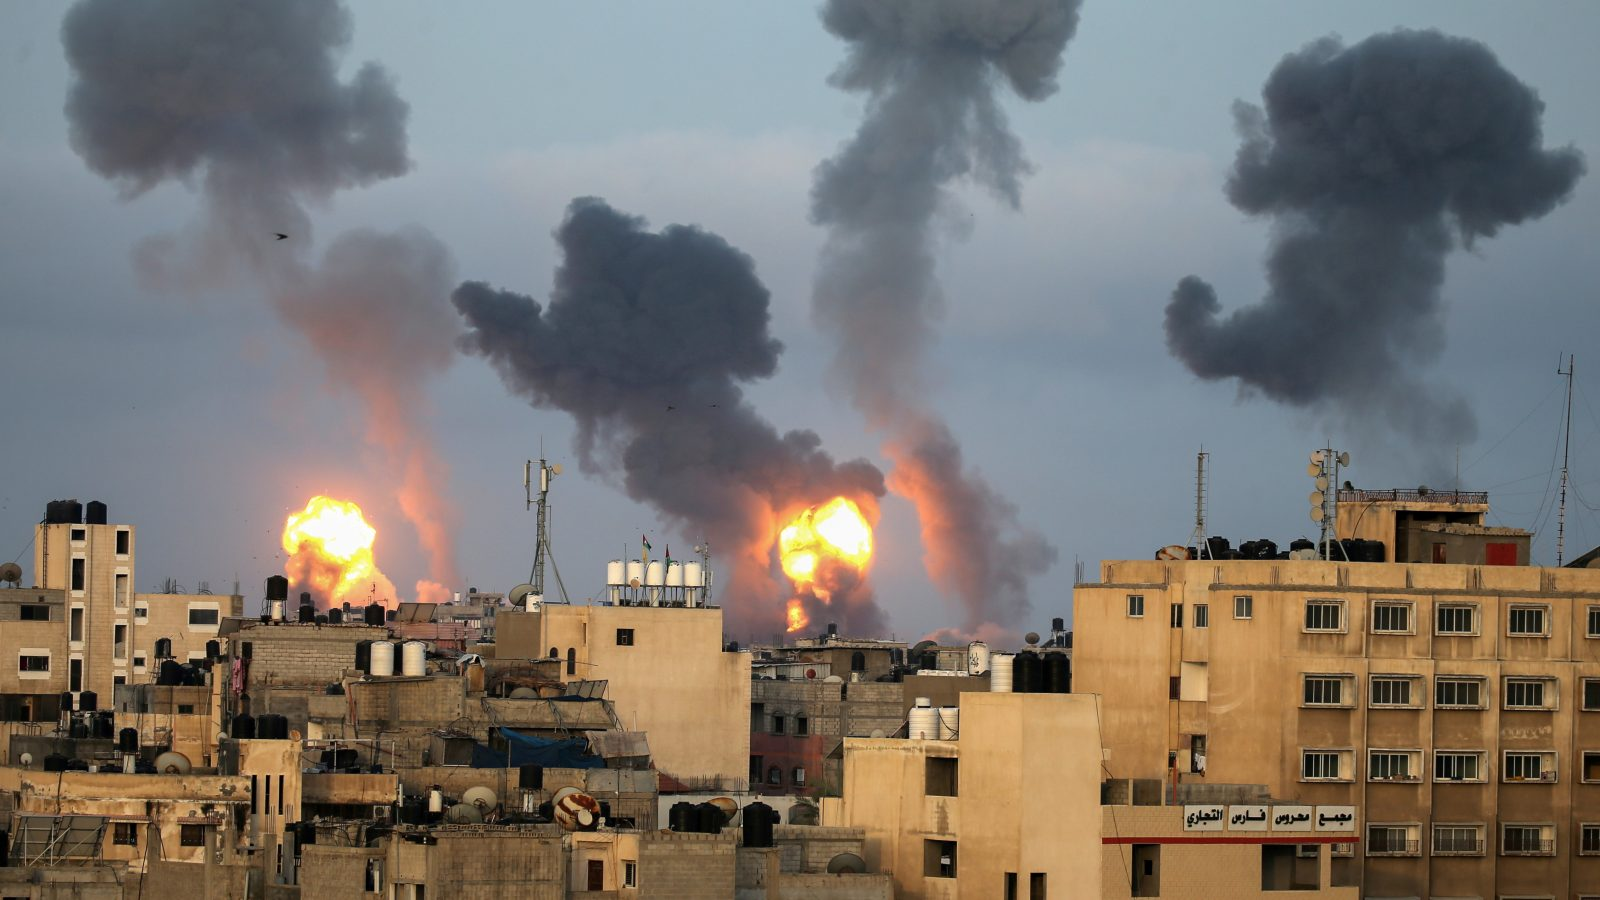 Fires and dark smoke rise over buildings in Gaza